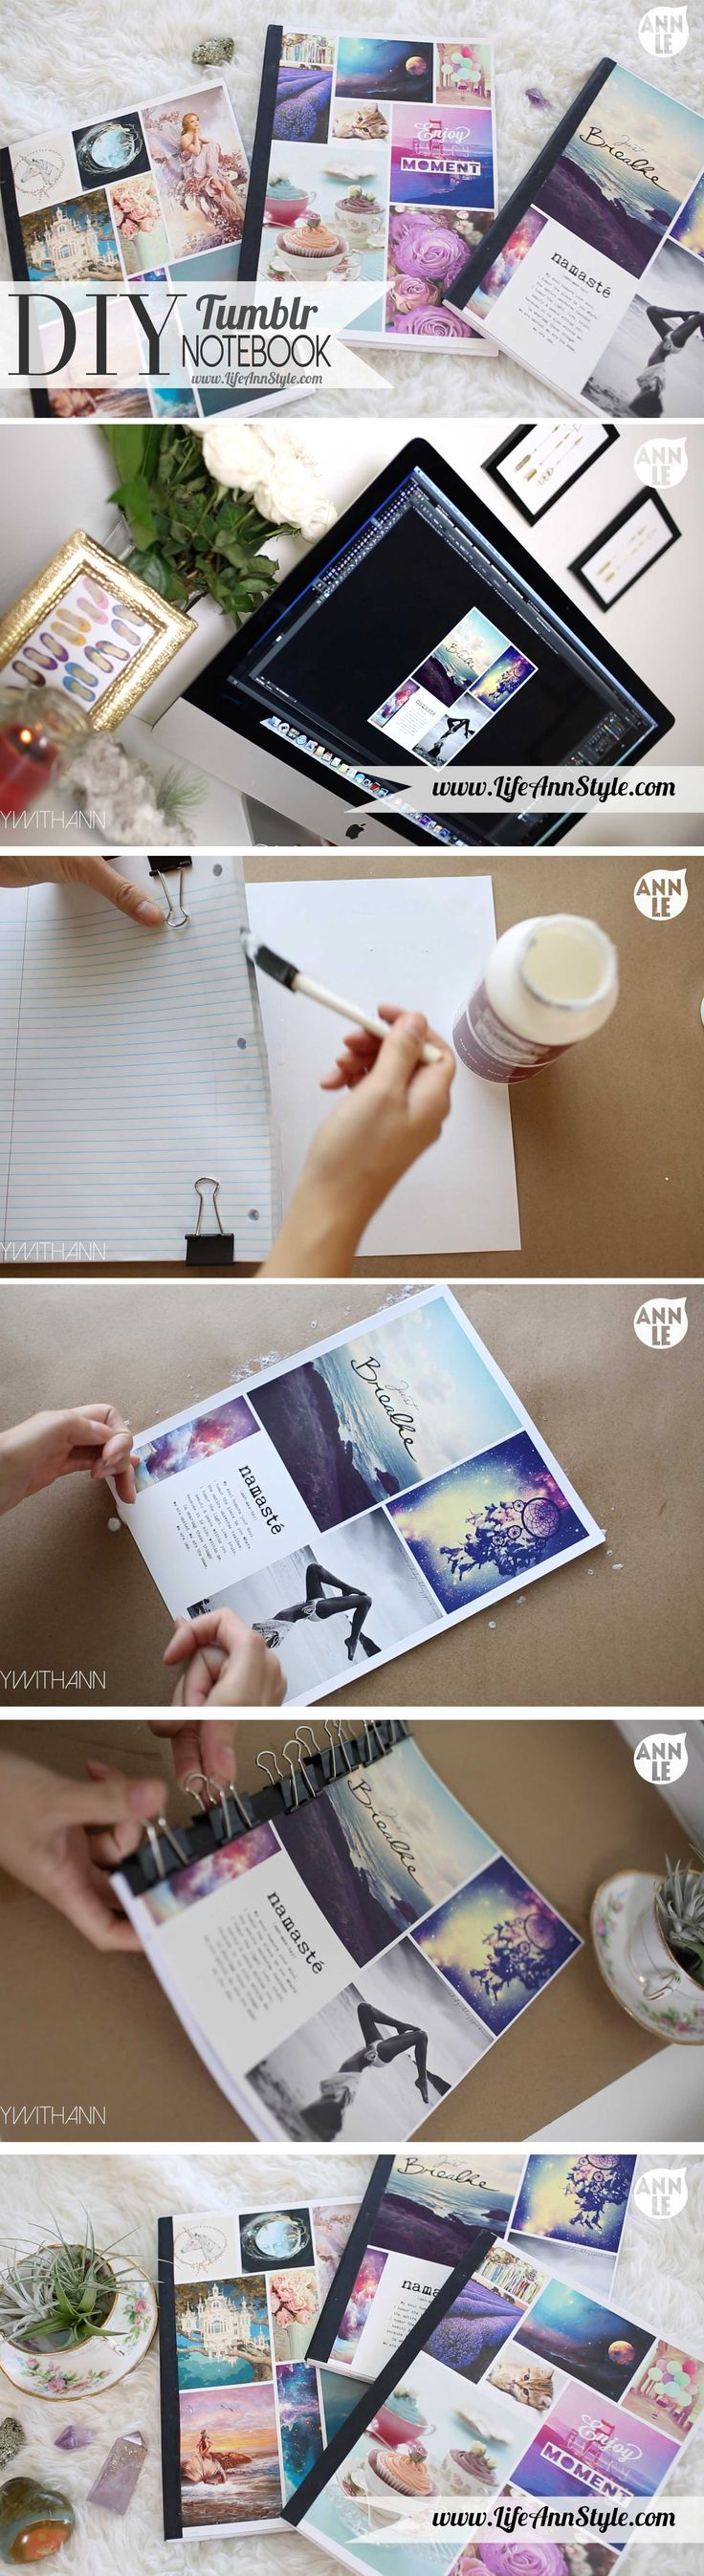 DIY Tumblr Inspired Notebooks! | lifestyle #BacktoSchool #DIY